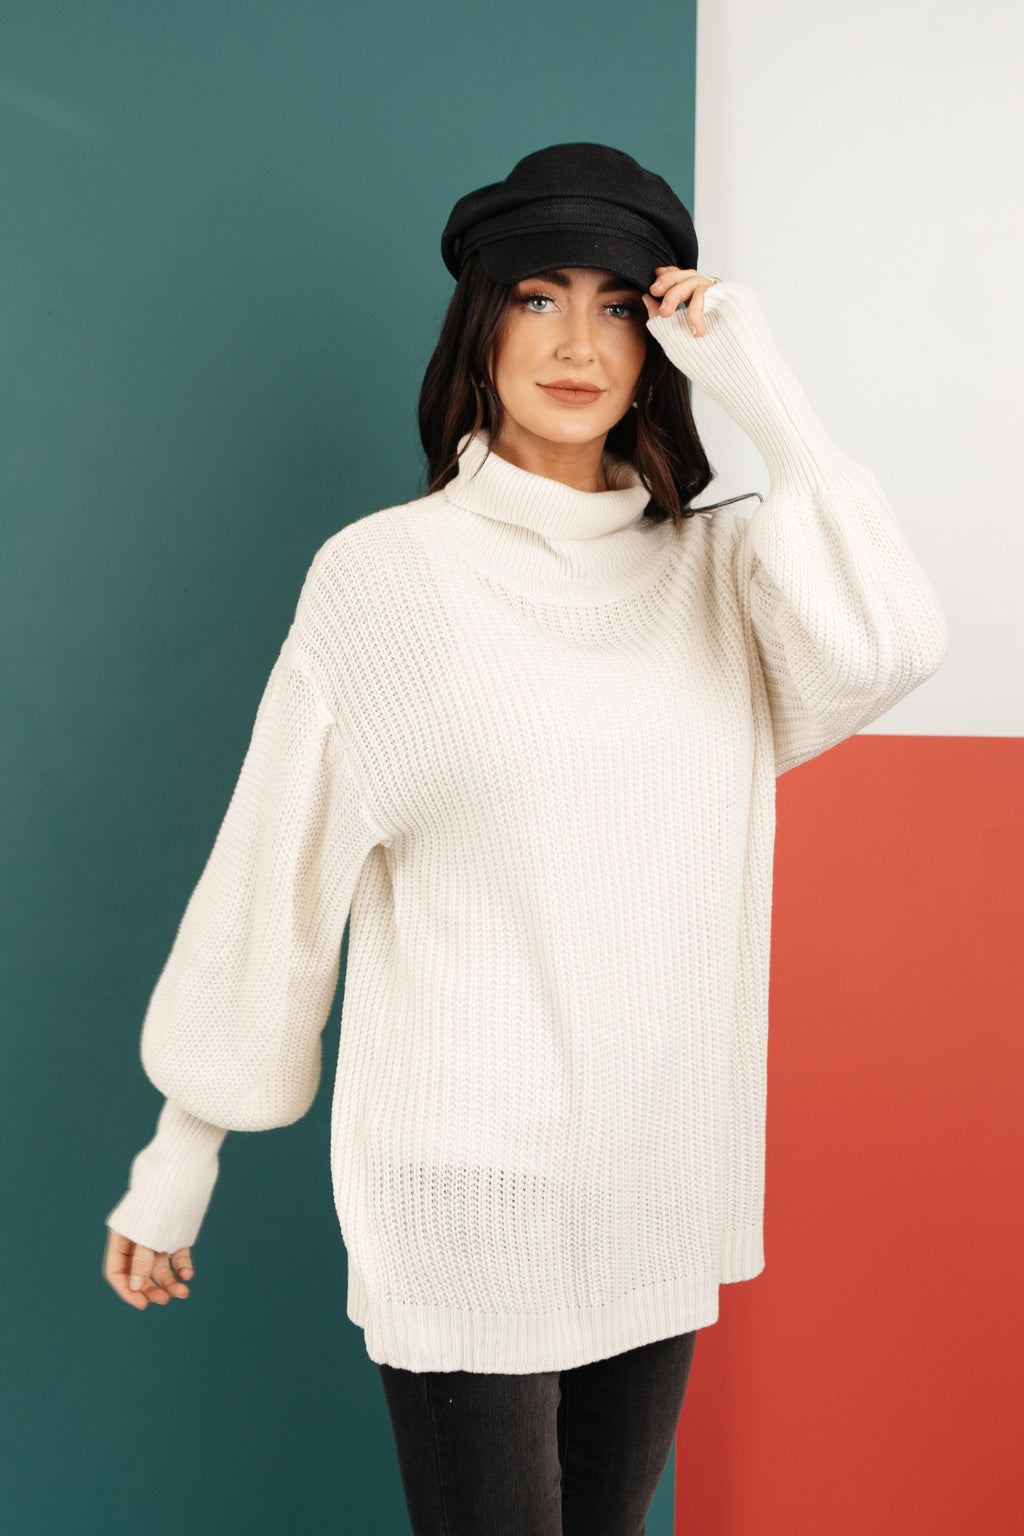 Cream Colored Classic Knit Sweater (Online Exclusives)